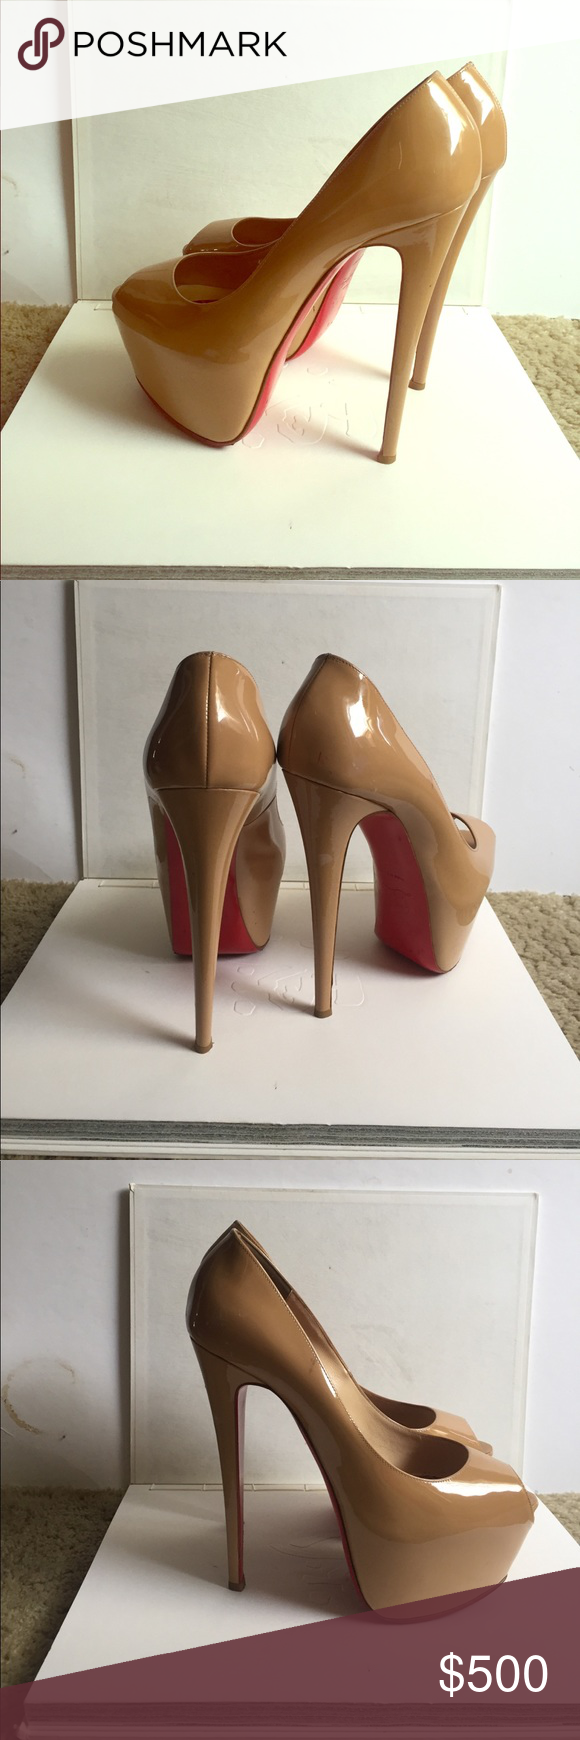 new concept ec57c 299dc Christian Louboutin Shoes The most popular